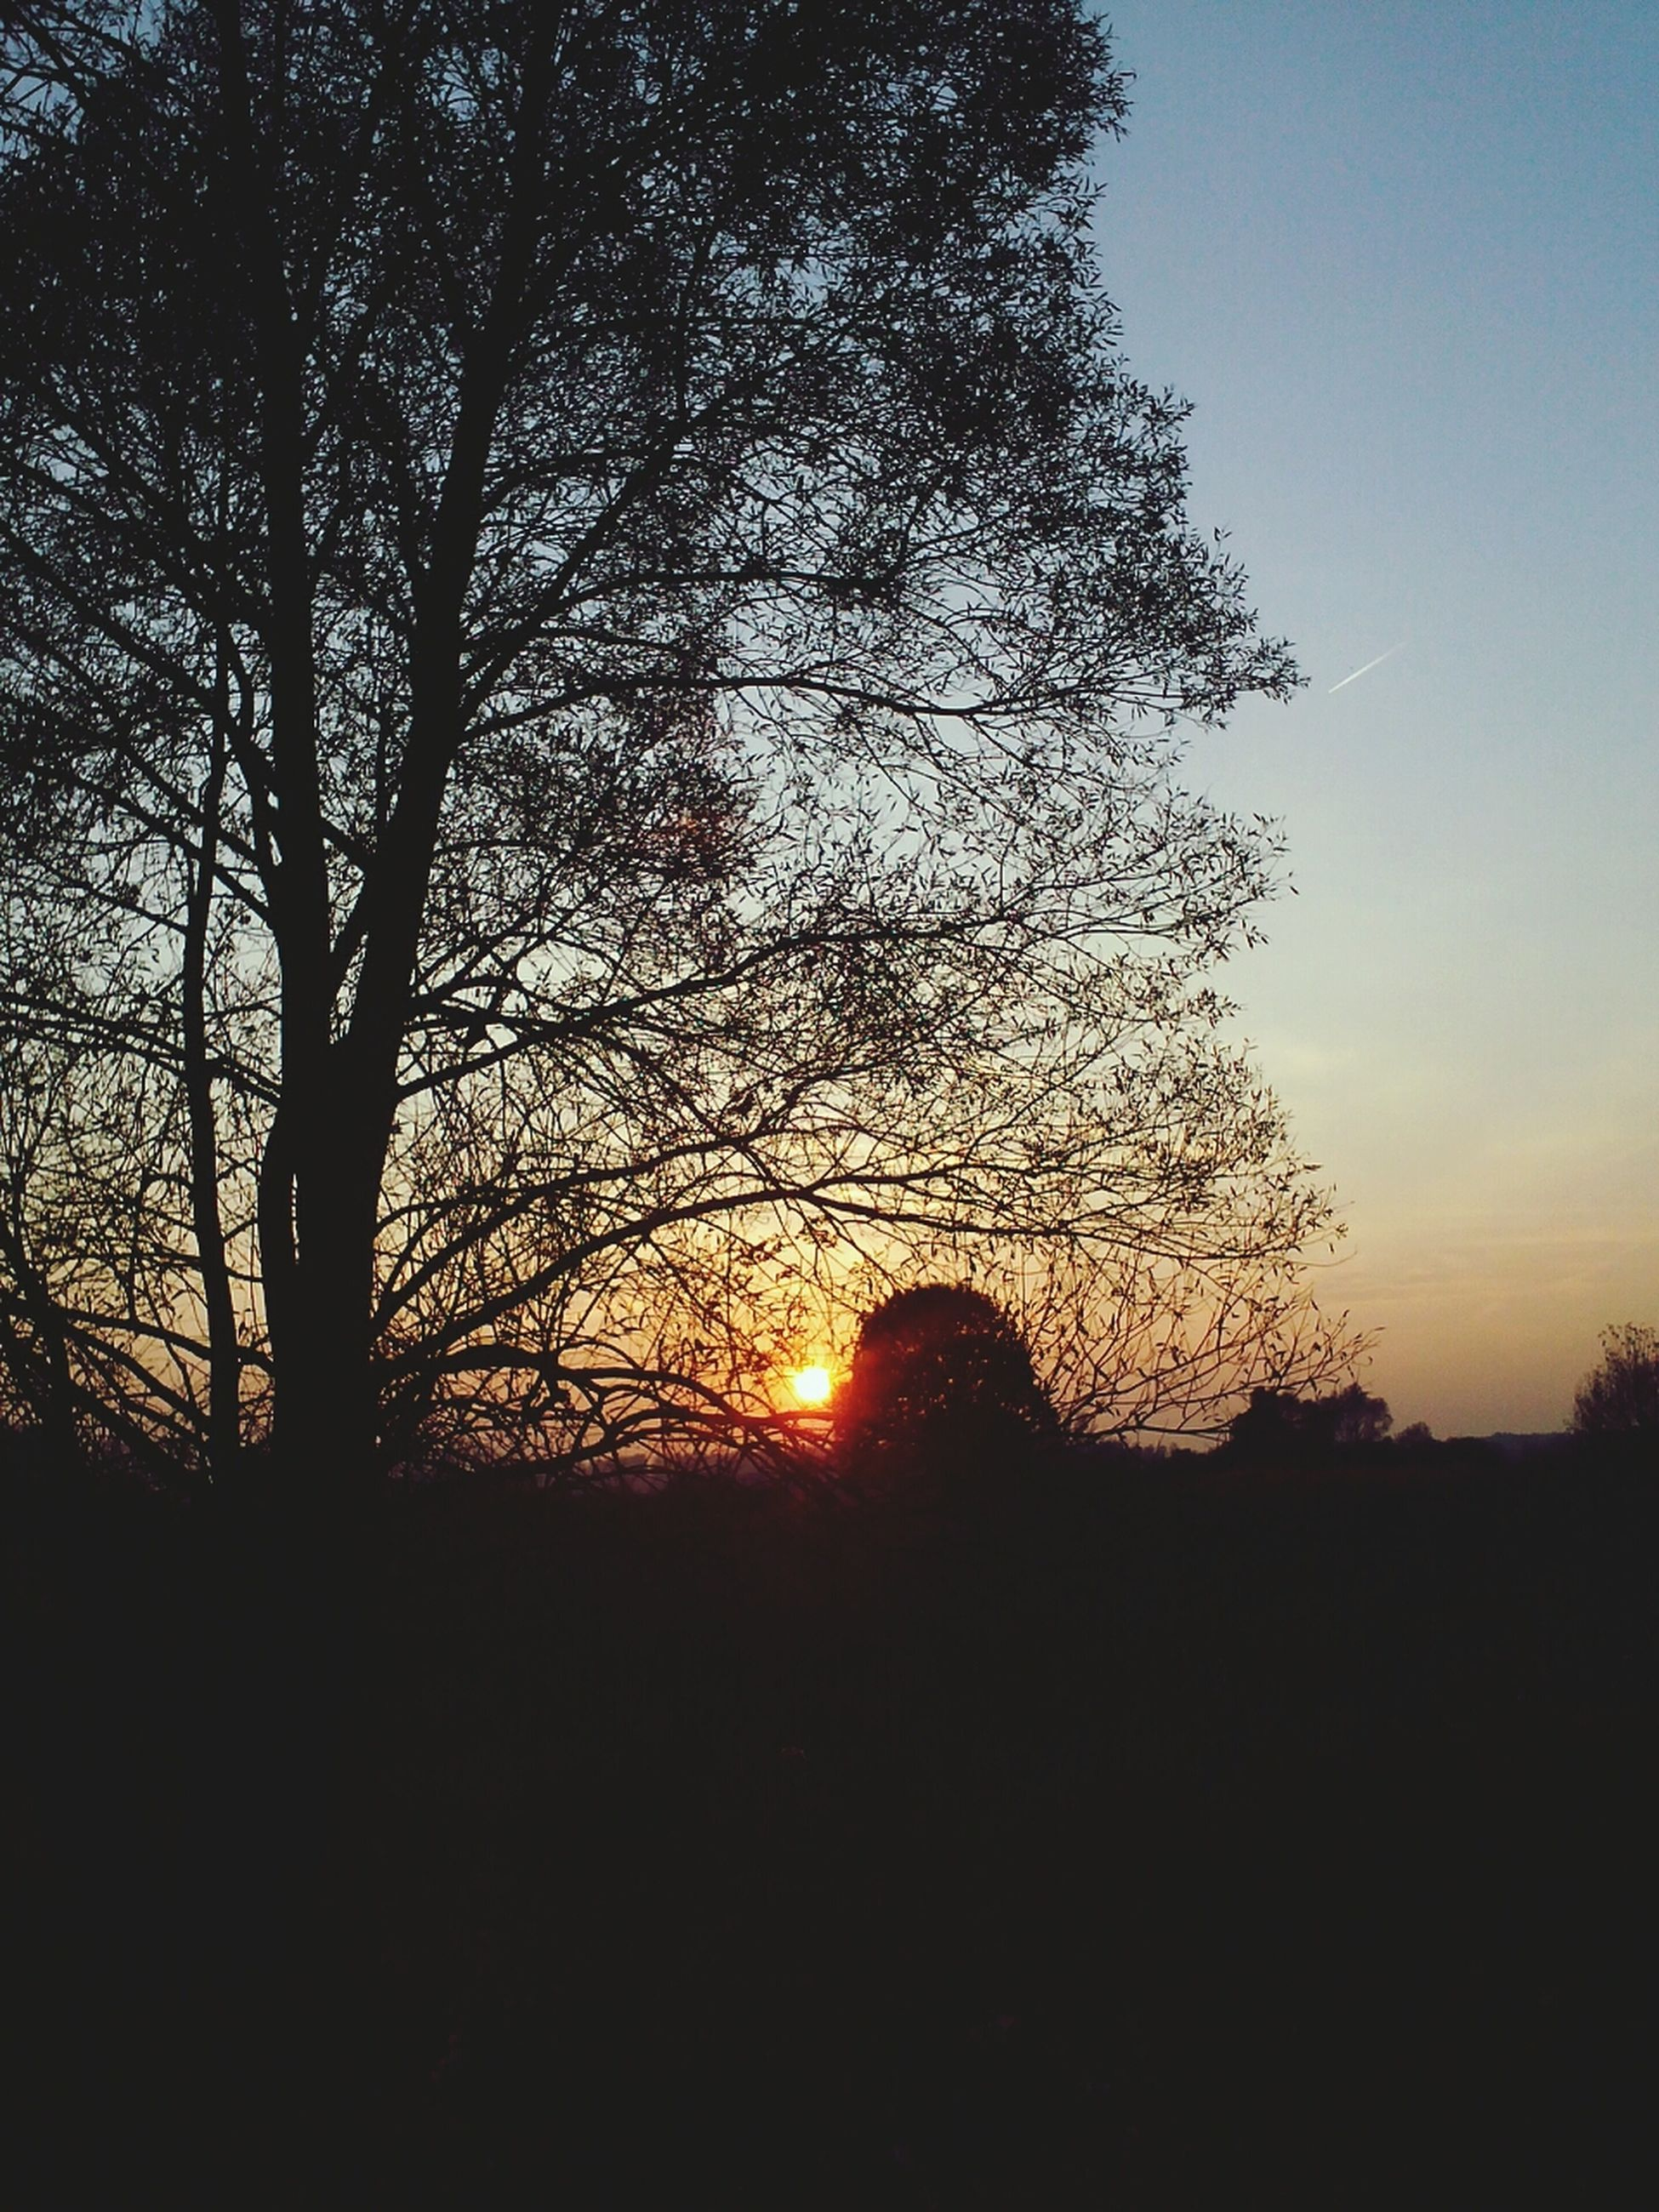 silhouette, sunset, tree, tranquility, sky, tranquil scene, beauty in nature, scenics, nature, orange color, branch, low angle view, idyllic, dark, landscape, sun, sunlight, outline, outdoors, growth